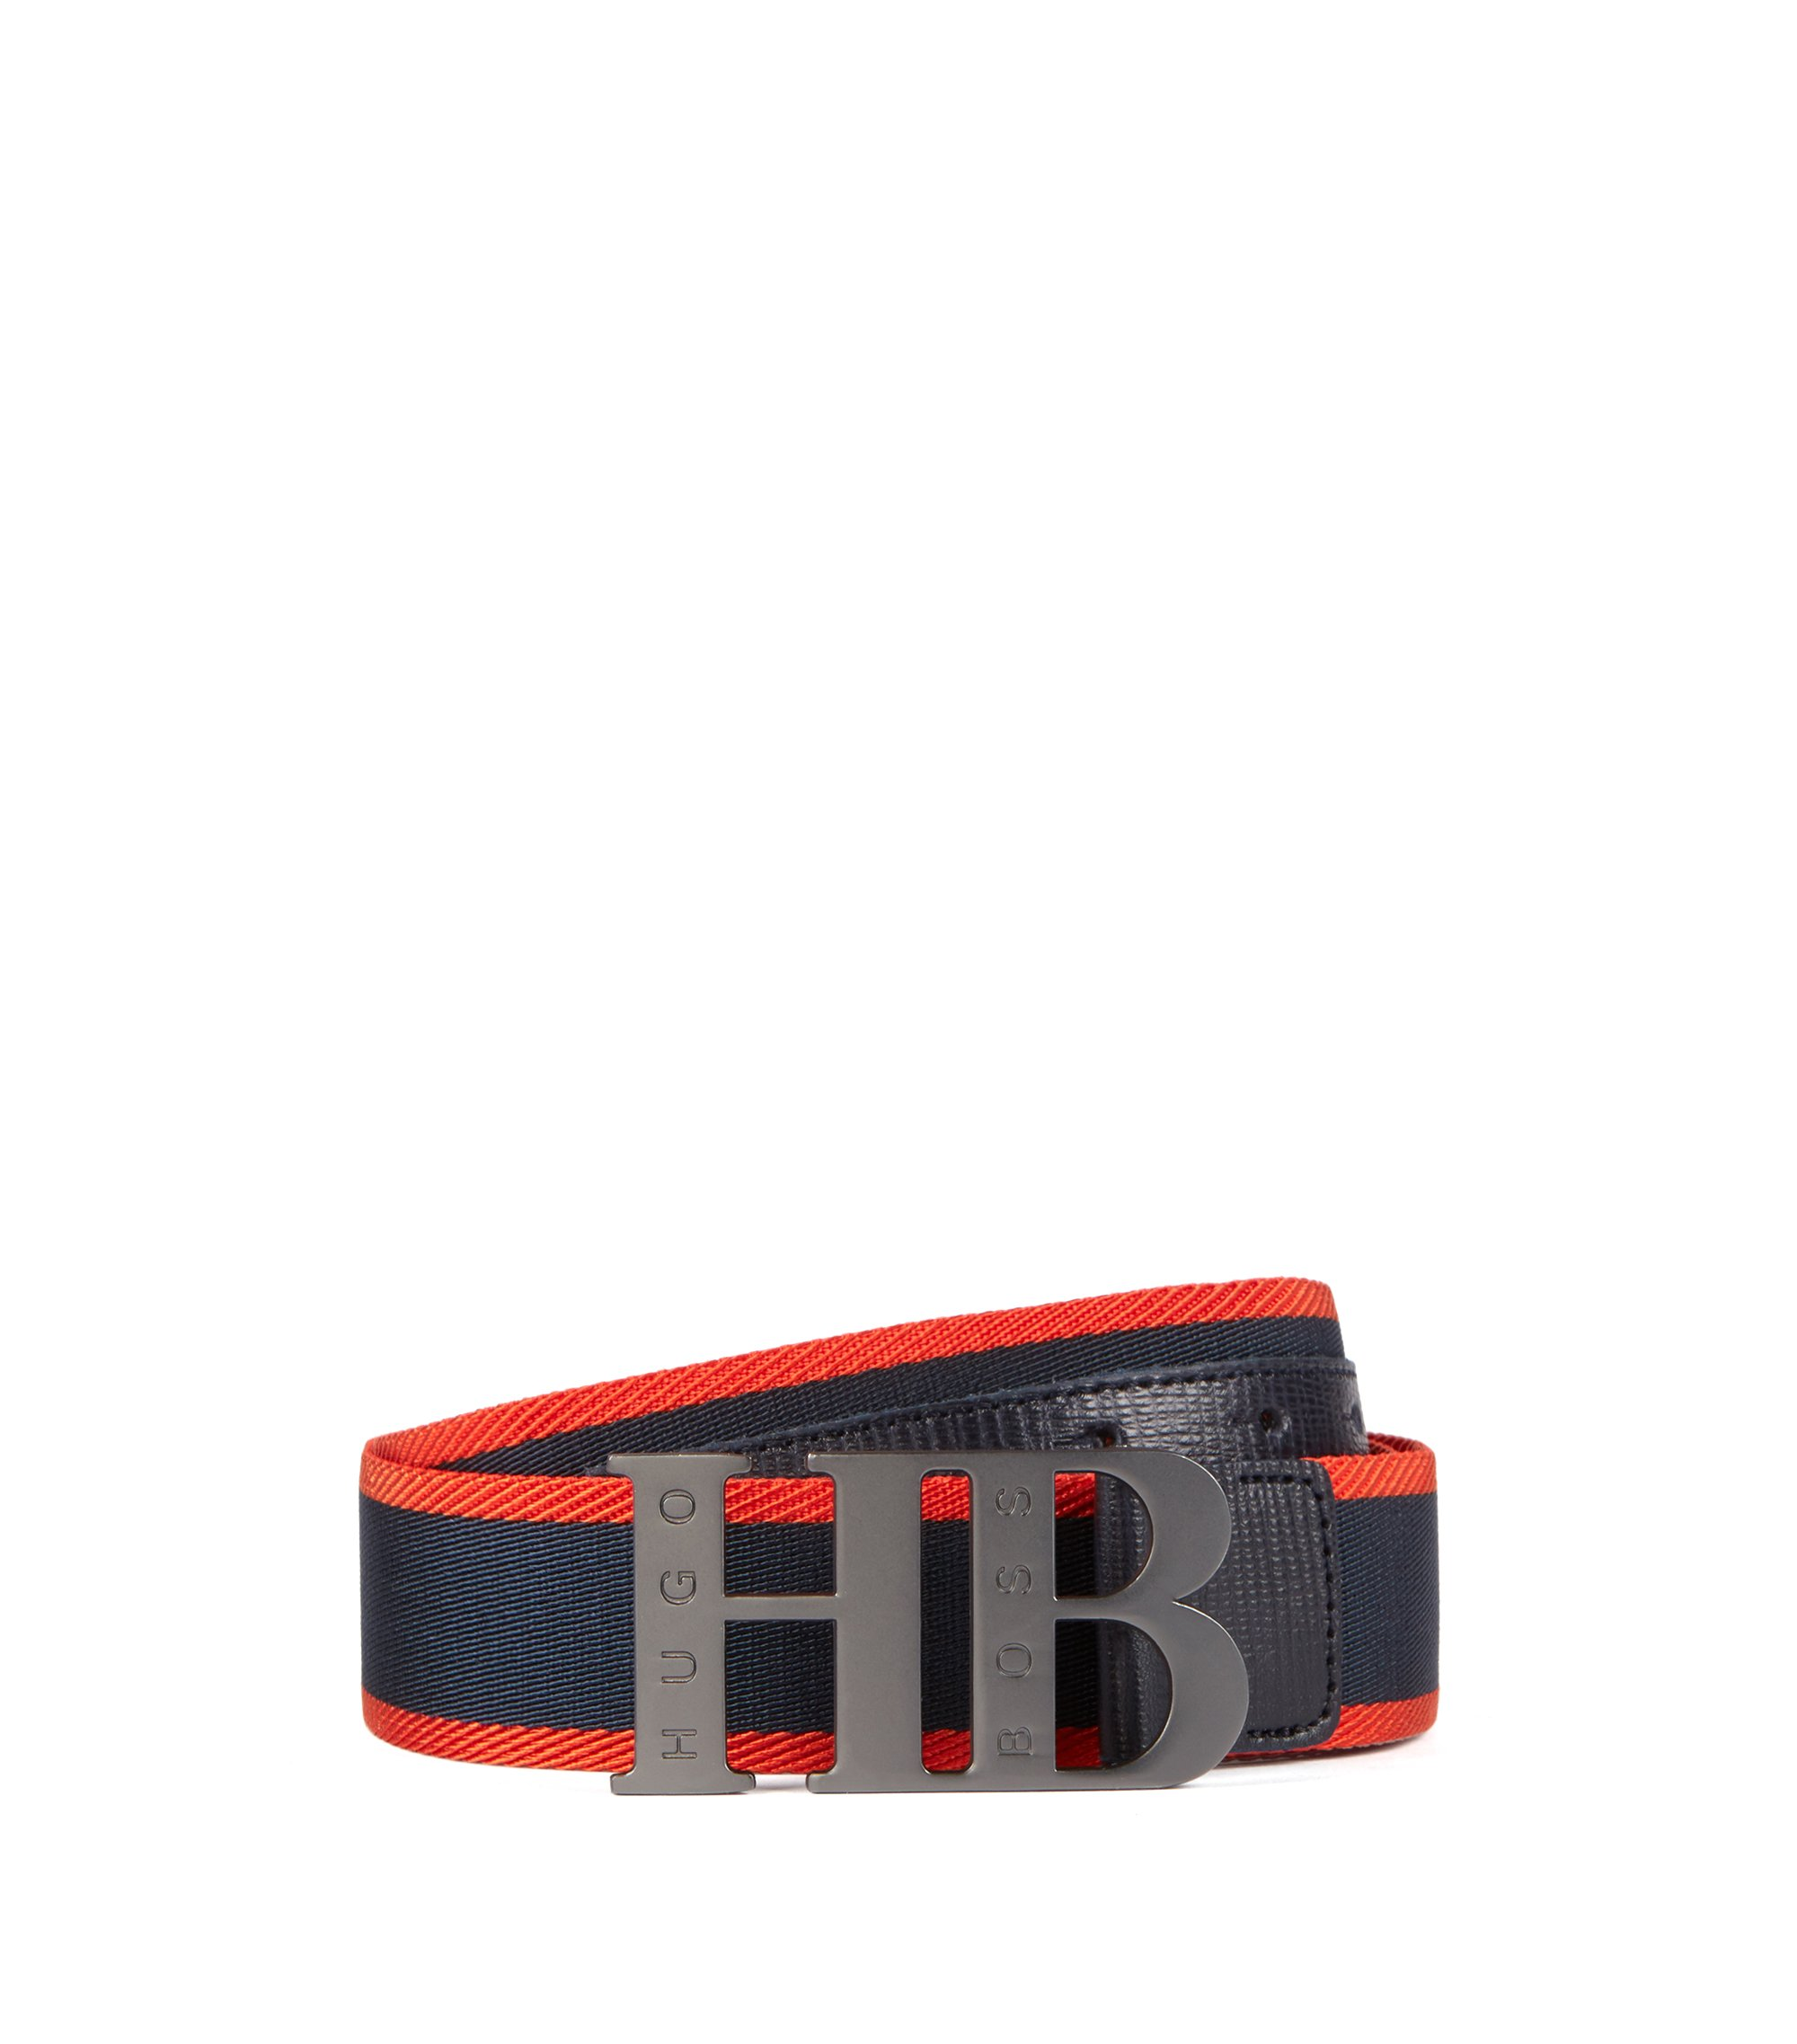 Woven belt with leather trim and branded plaque, Dark Blue